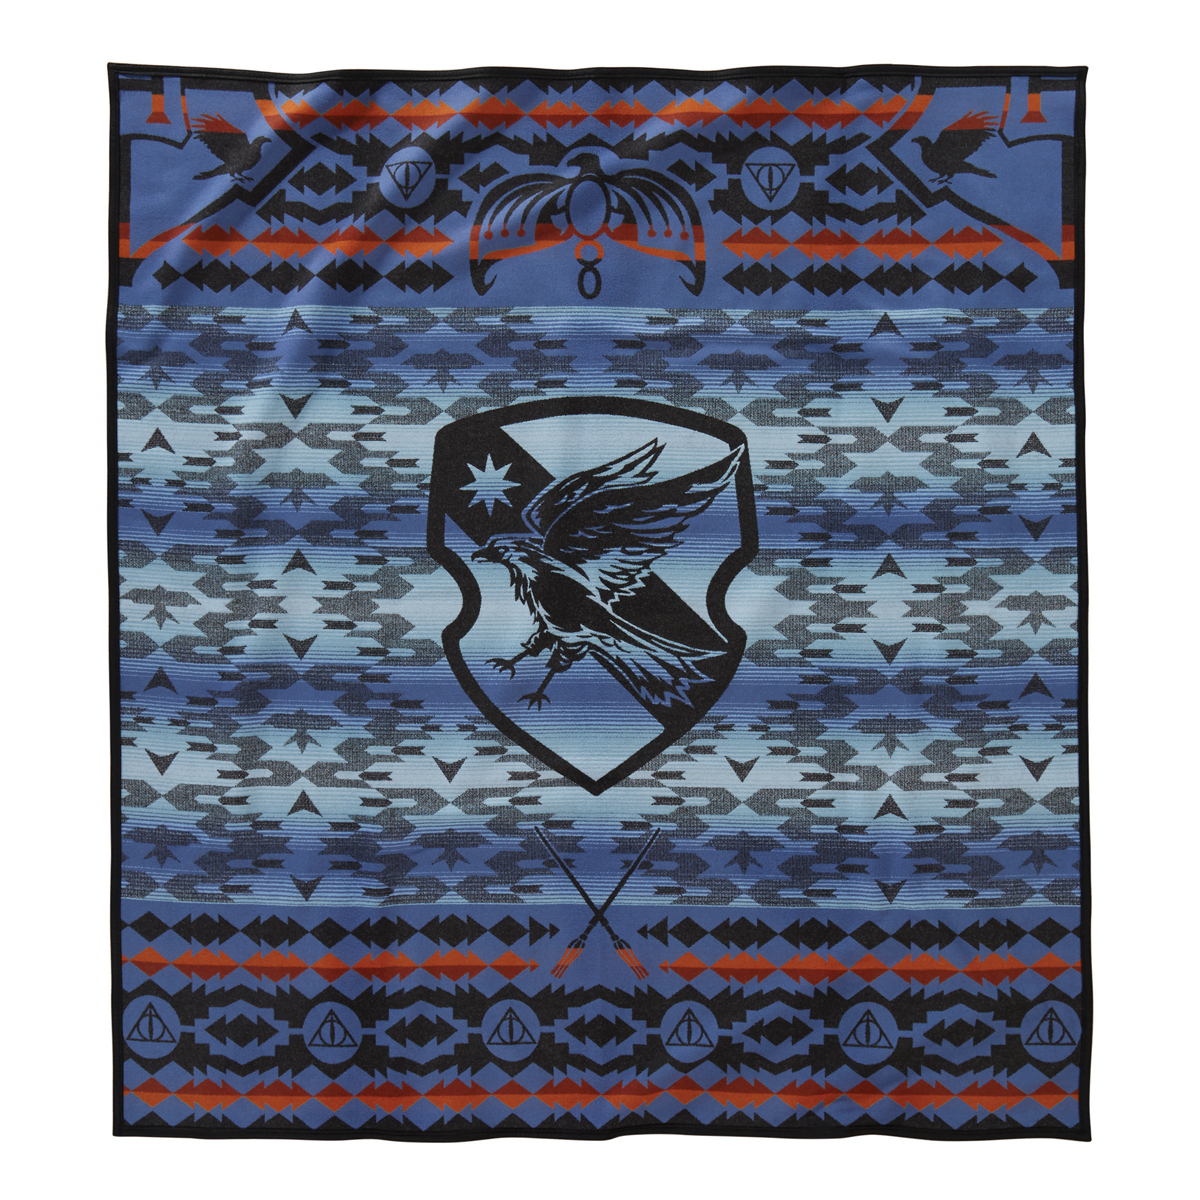 The Ravenclaw blanket by Pendleton